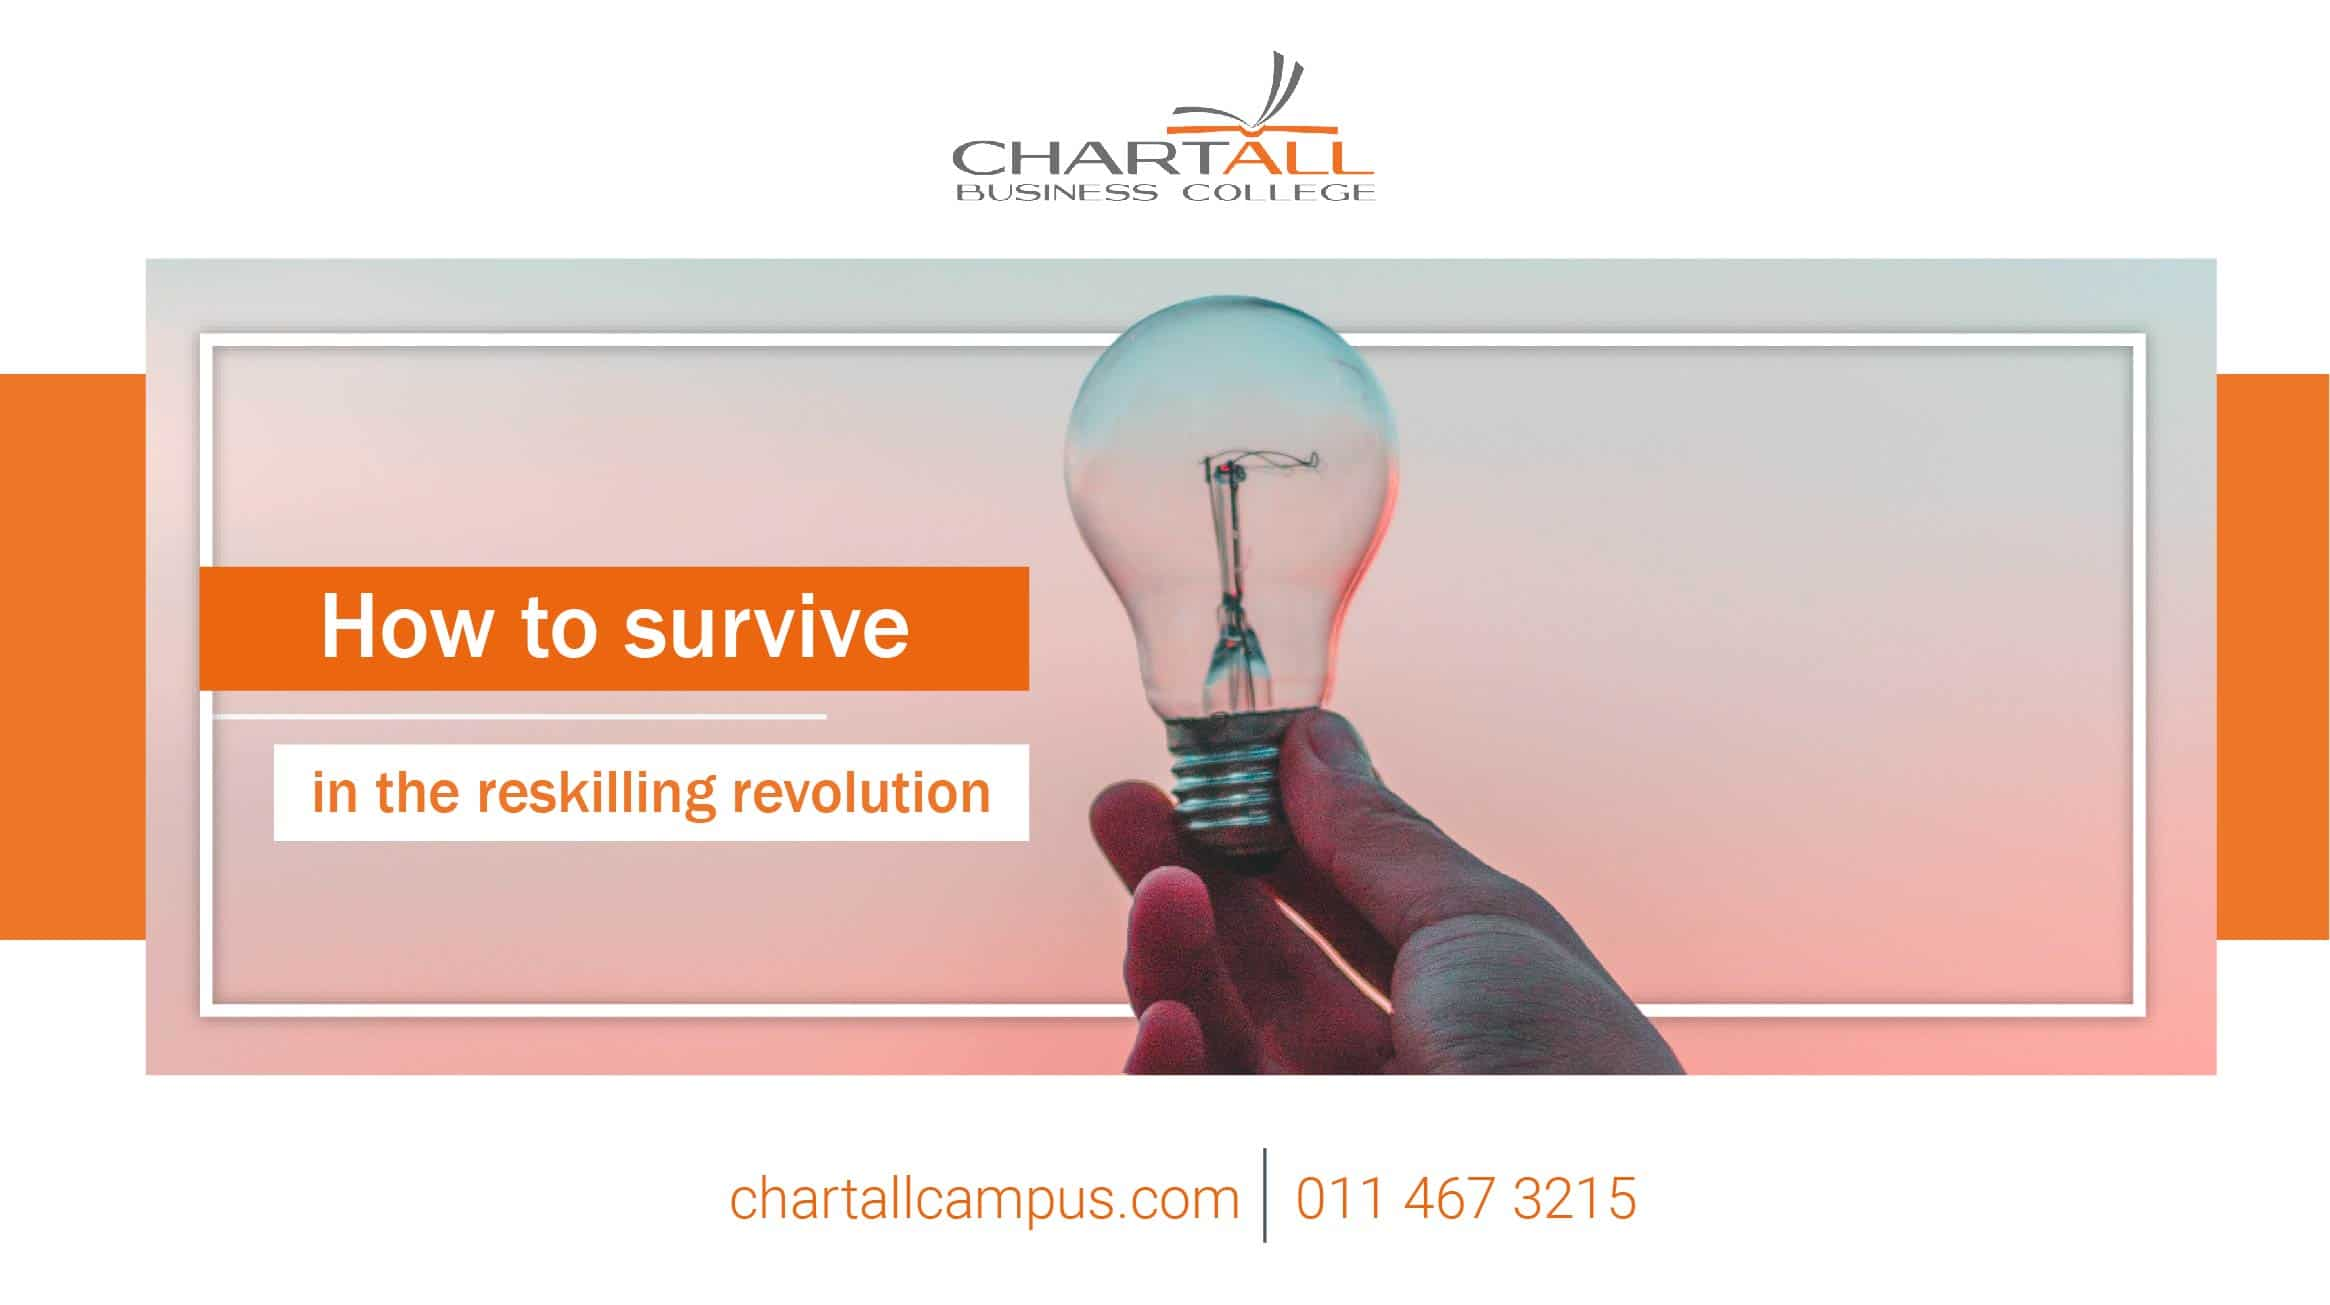 How to survive in the reskilling revolution.